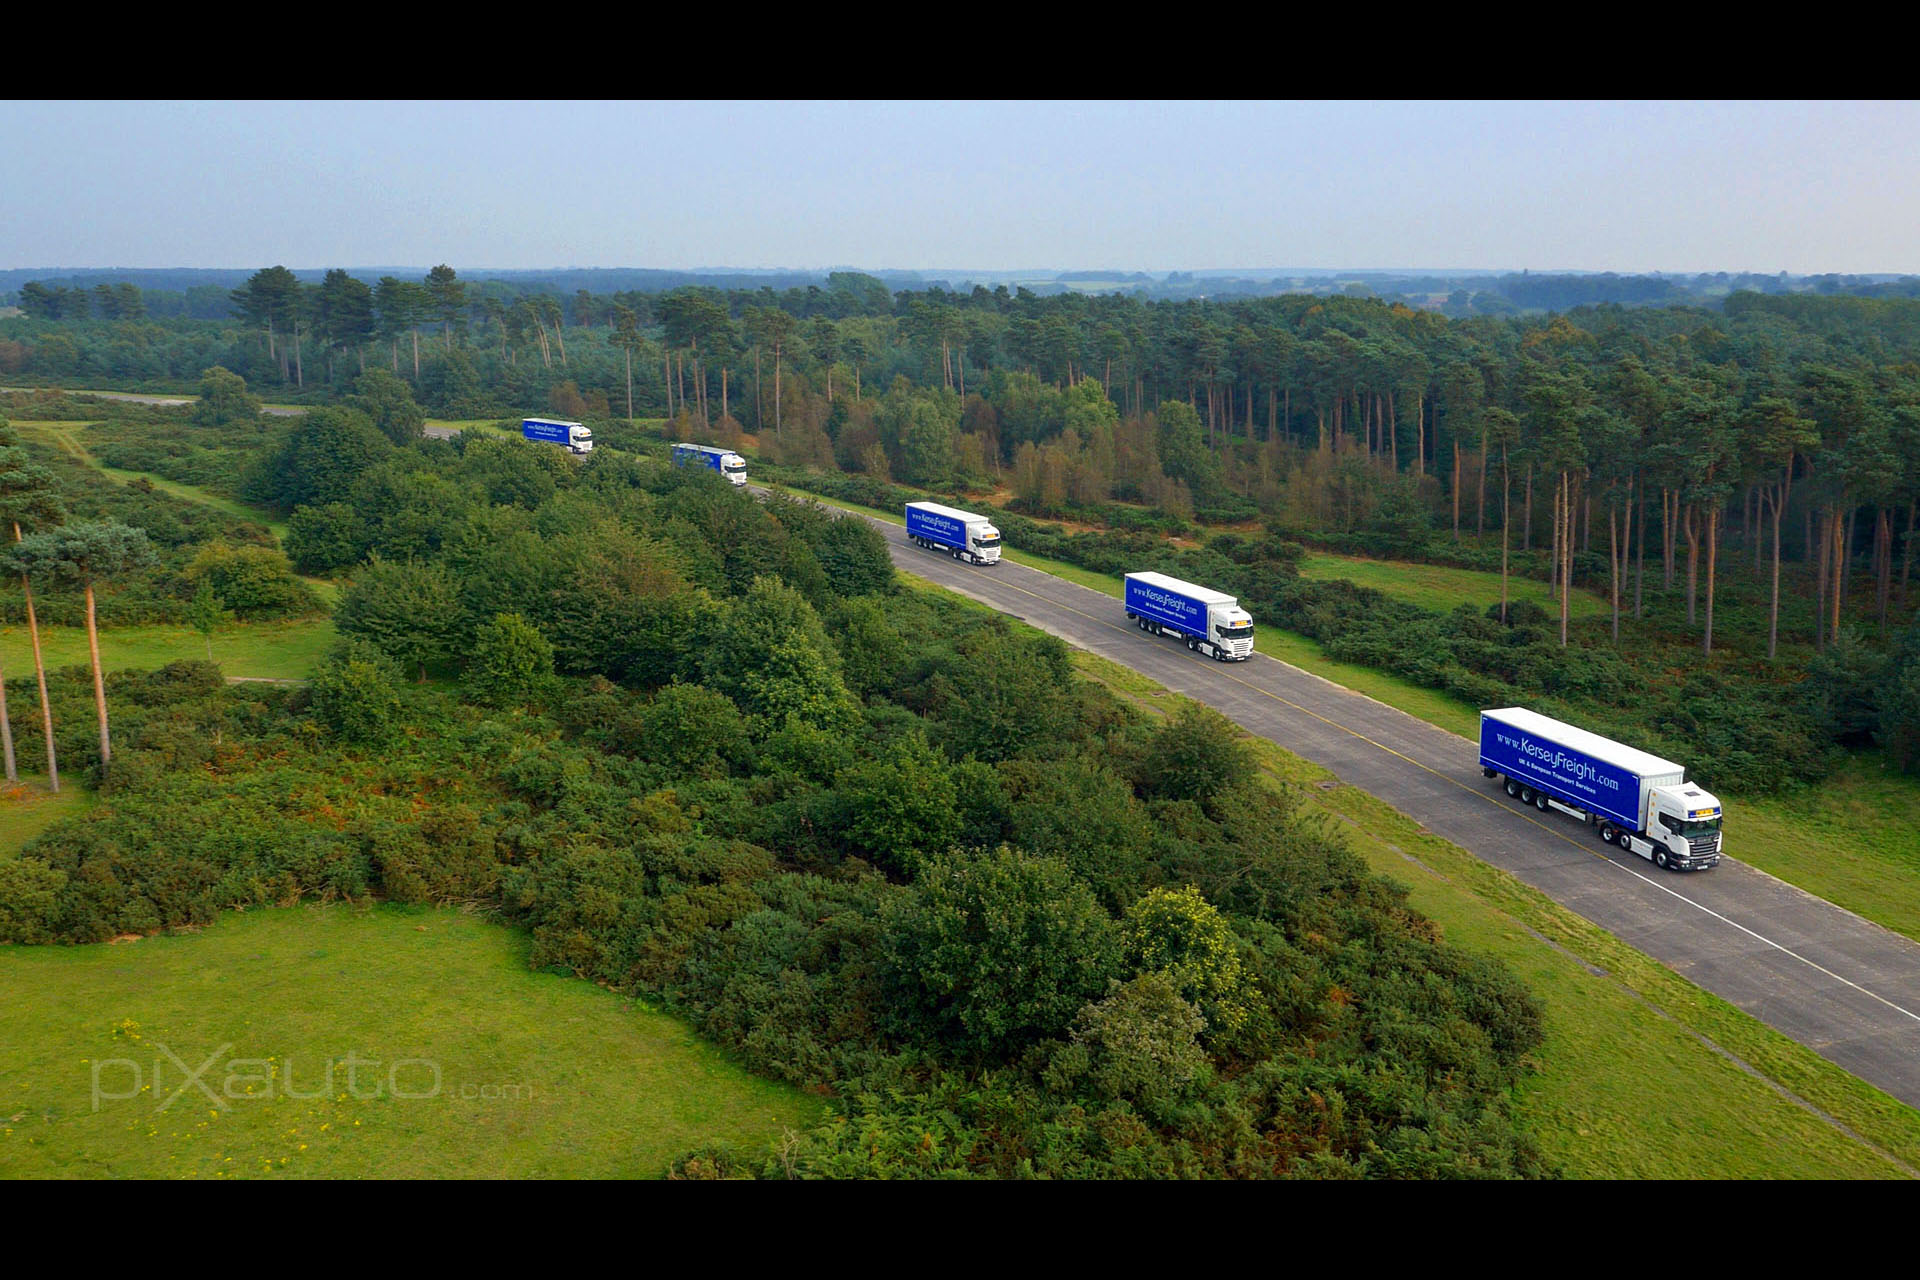 Kersey Freight aerial photography